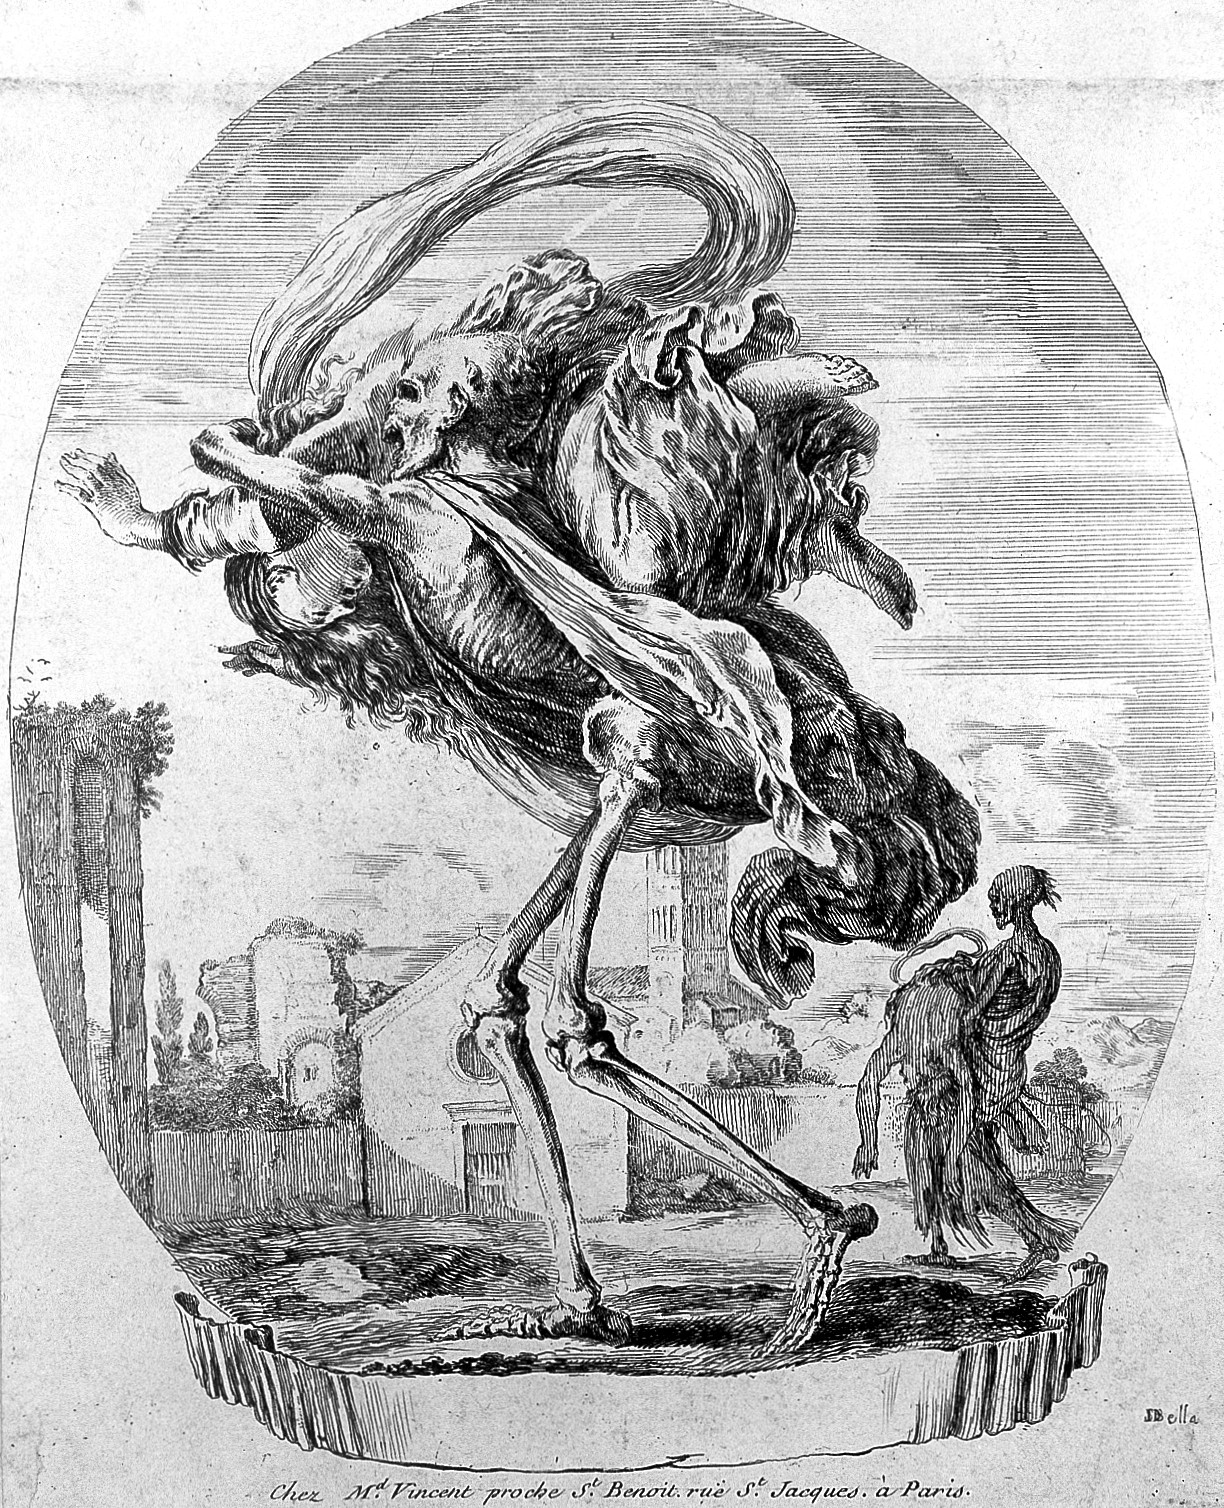 A etching of a skeleton carrying a women on his shoulders. Taken from istock images.